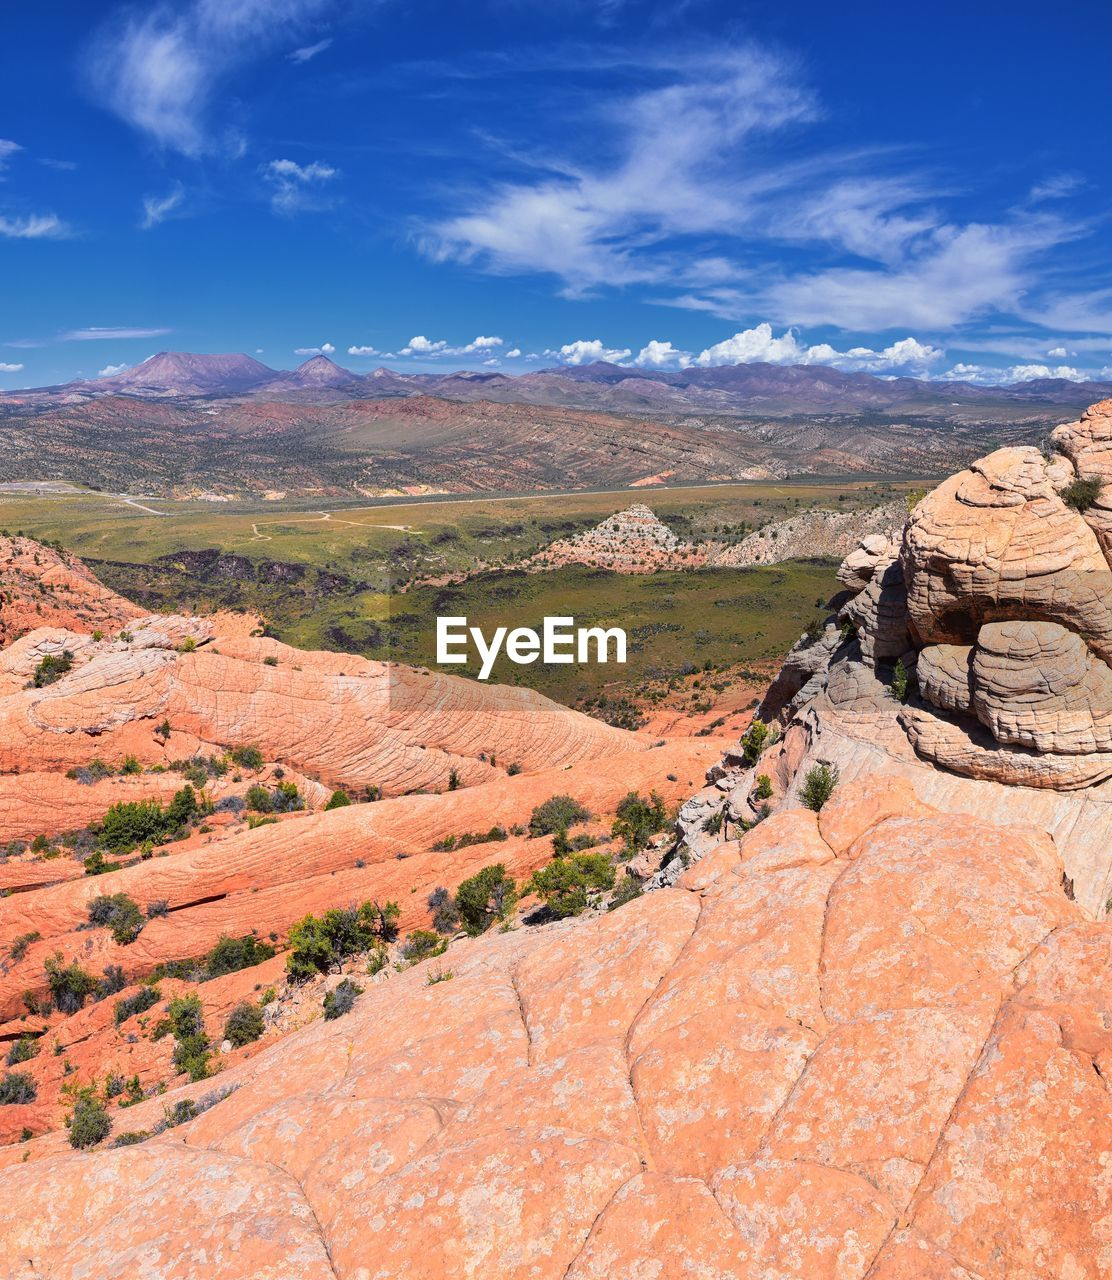 sky, rock, environment, scenics - nature, tranquil scene, landscape, non-urban scene, rock - object, tranquility, beauty in nature, cloud - sky, nature, mountain, rock formation, remote, solid, travel, no people, idyllic, land, outdoors, arid climate, climate, eroded